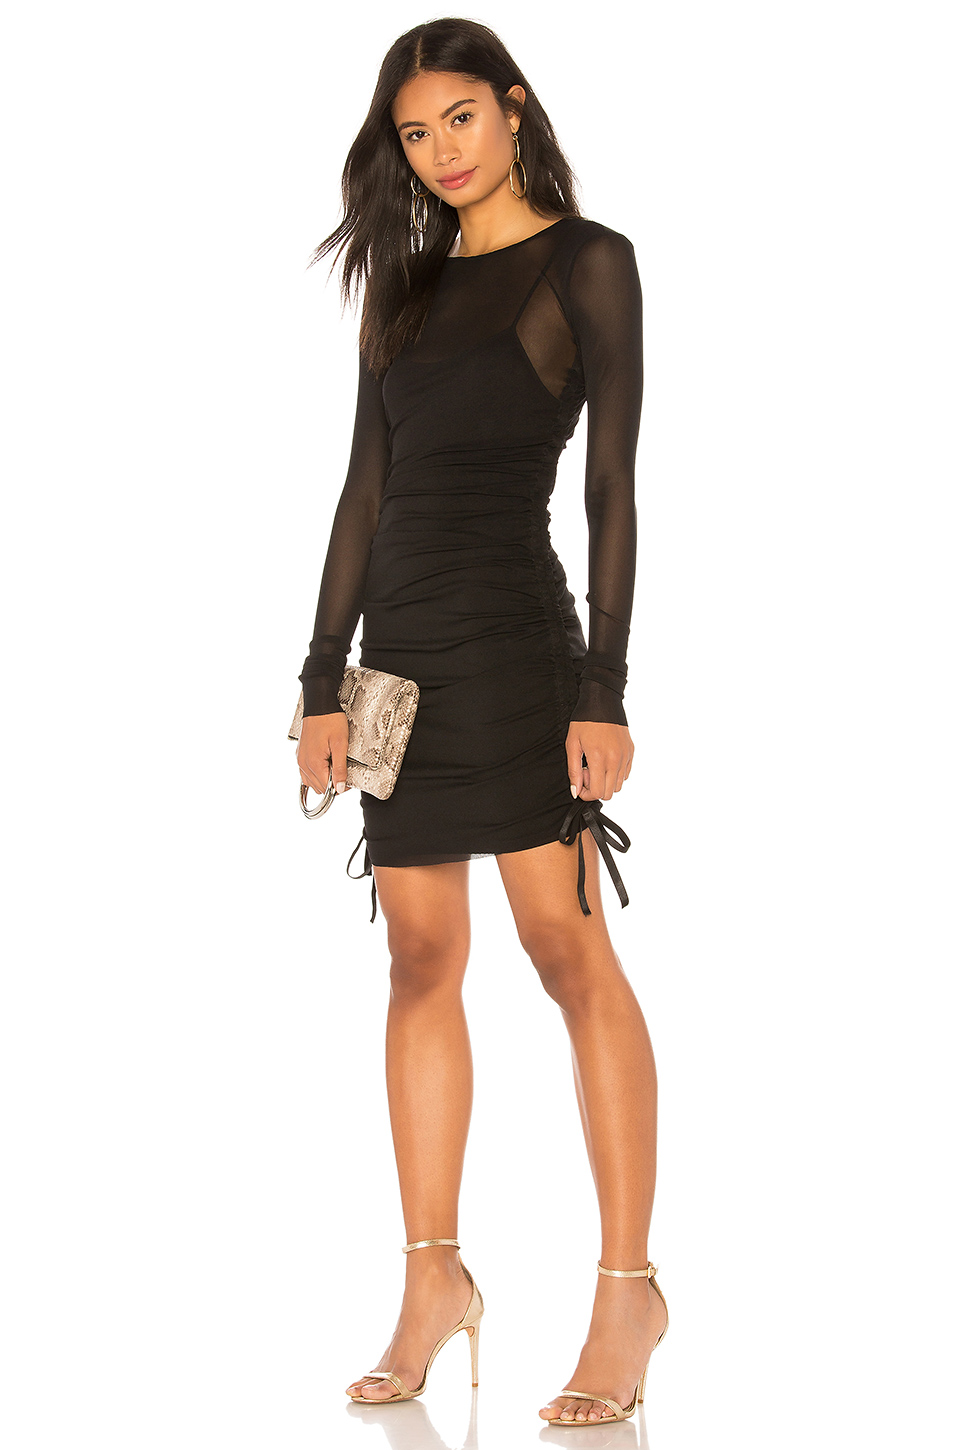 a754f94f2181 Buy Original KENDALL + KYLIE Mesh Cover Up Mini Dress at Indonesia ...